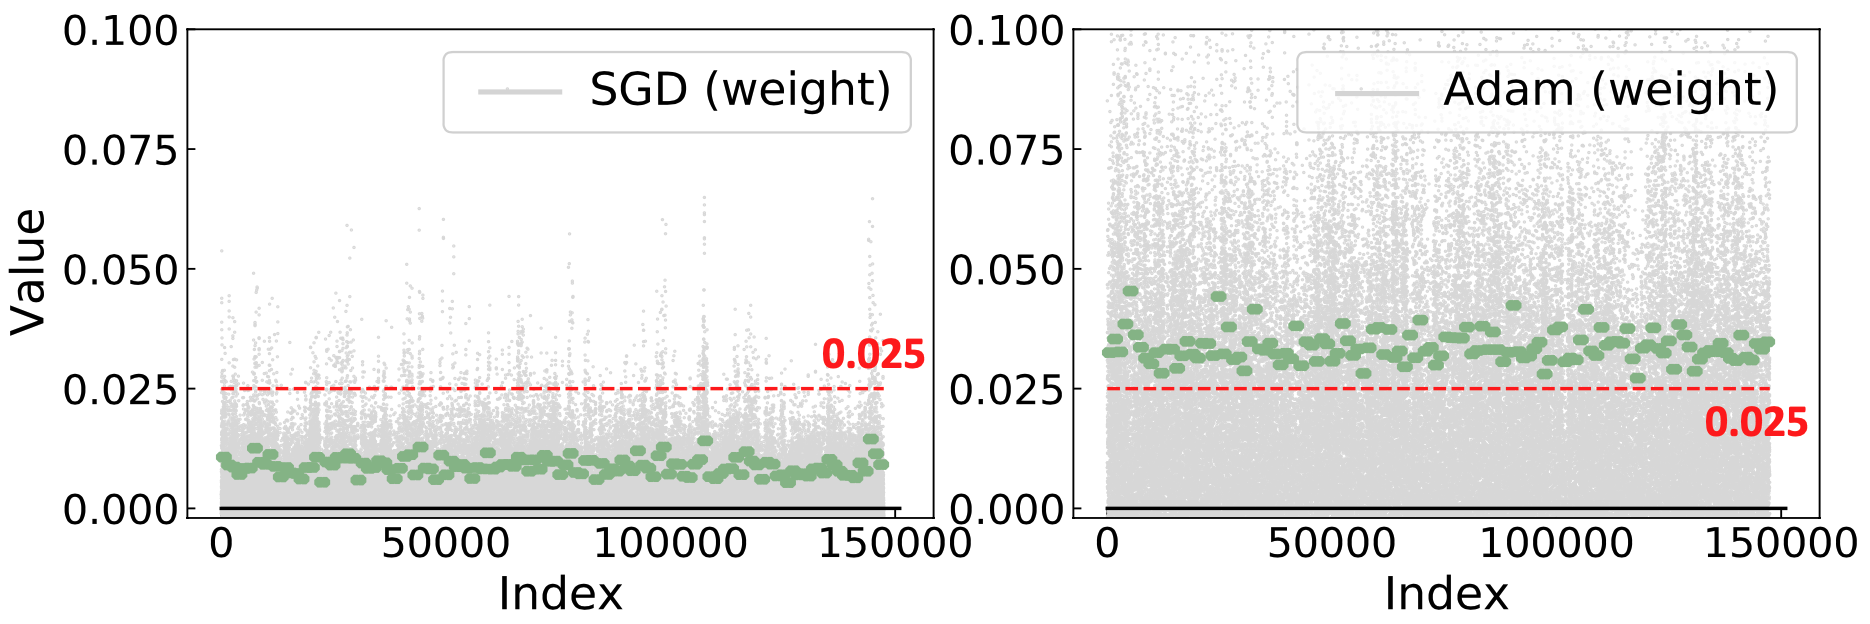 Visualization of the weight distributions in the first layer. For clarity, we use